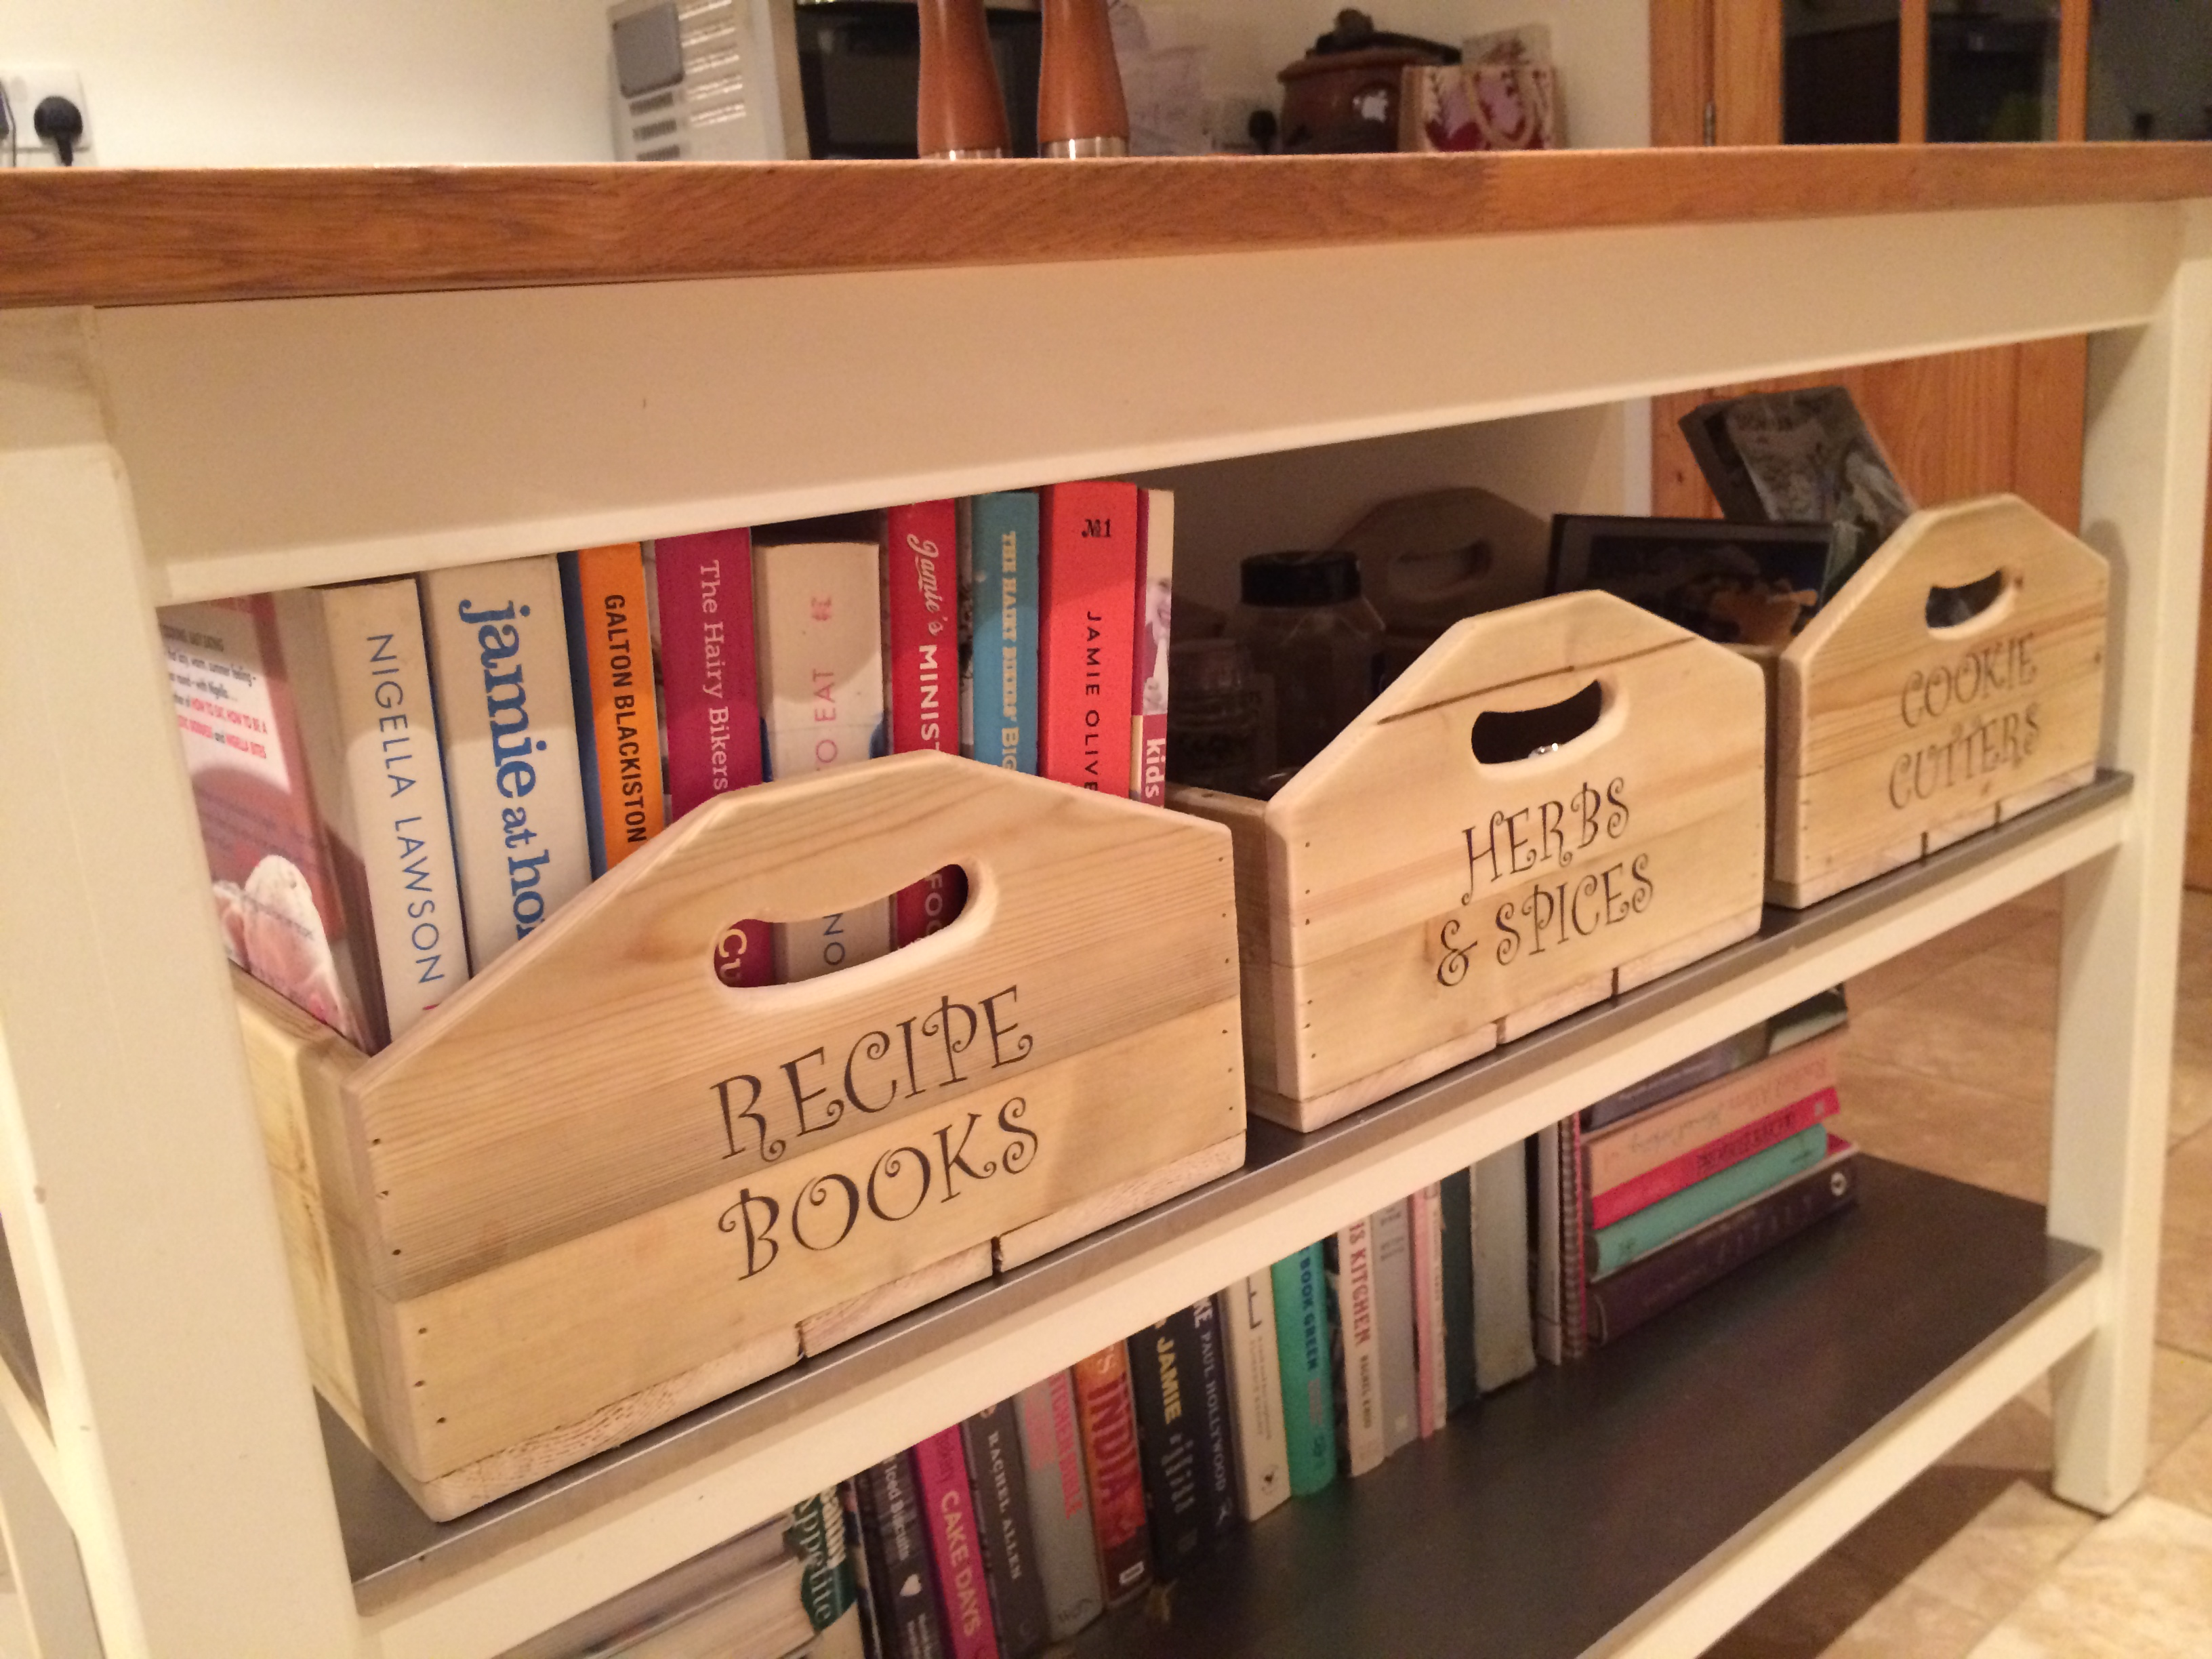 HELLY BOXES IN IKEA KITCHEN ISLAND